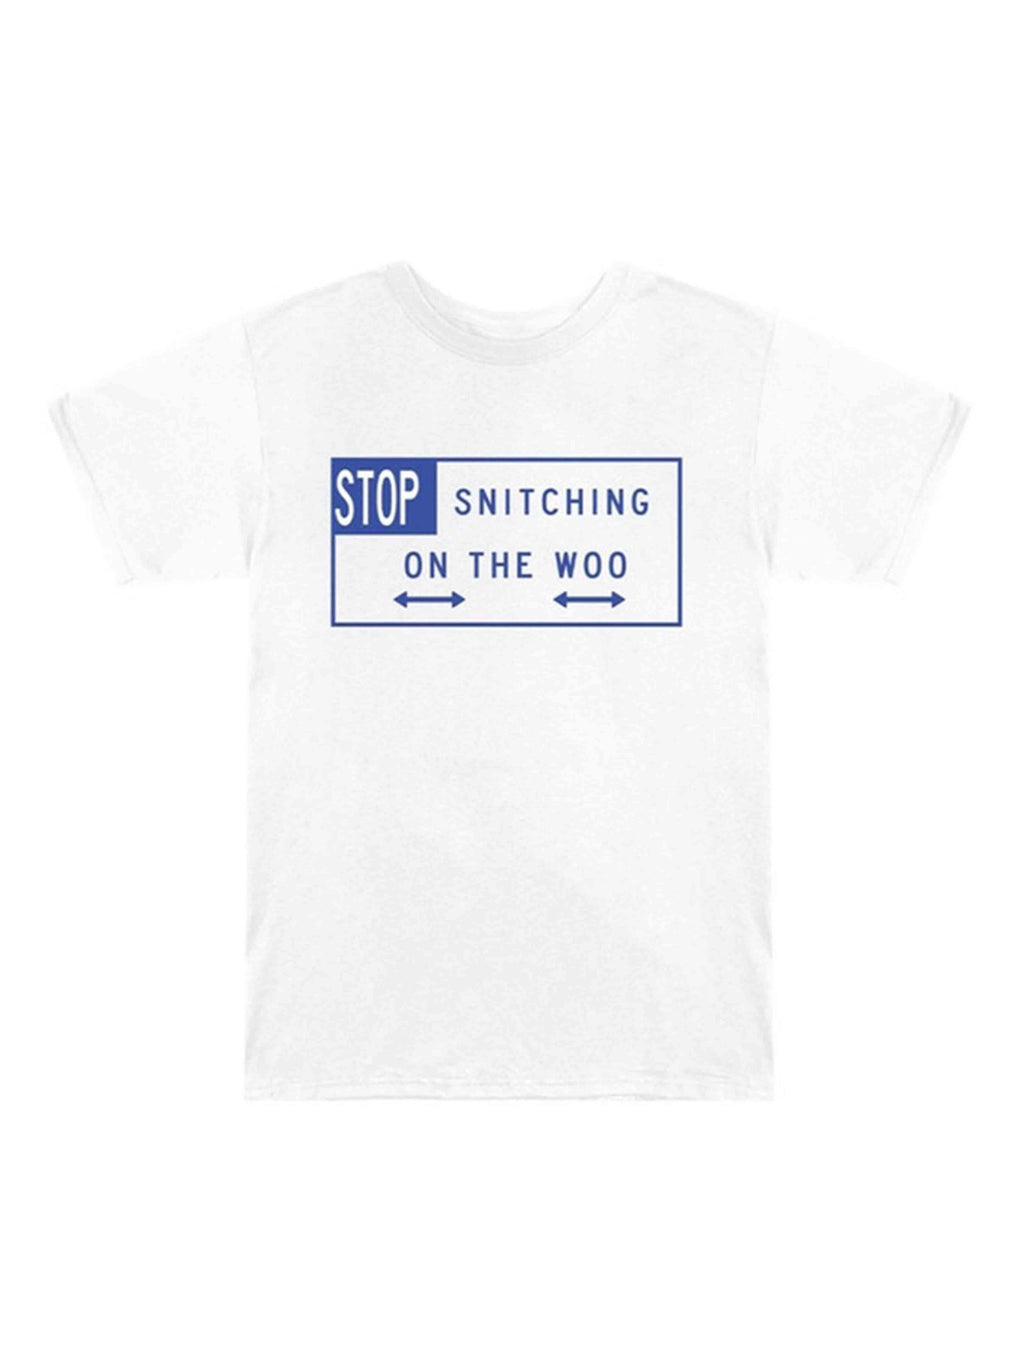 VLONE X Pop Smoke Stop Snitching T-Shirt White/Blue L - PRIOR